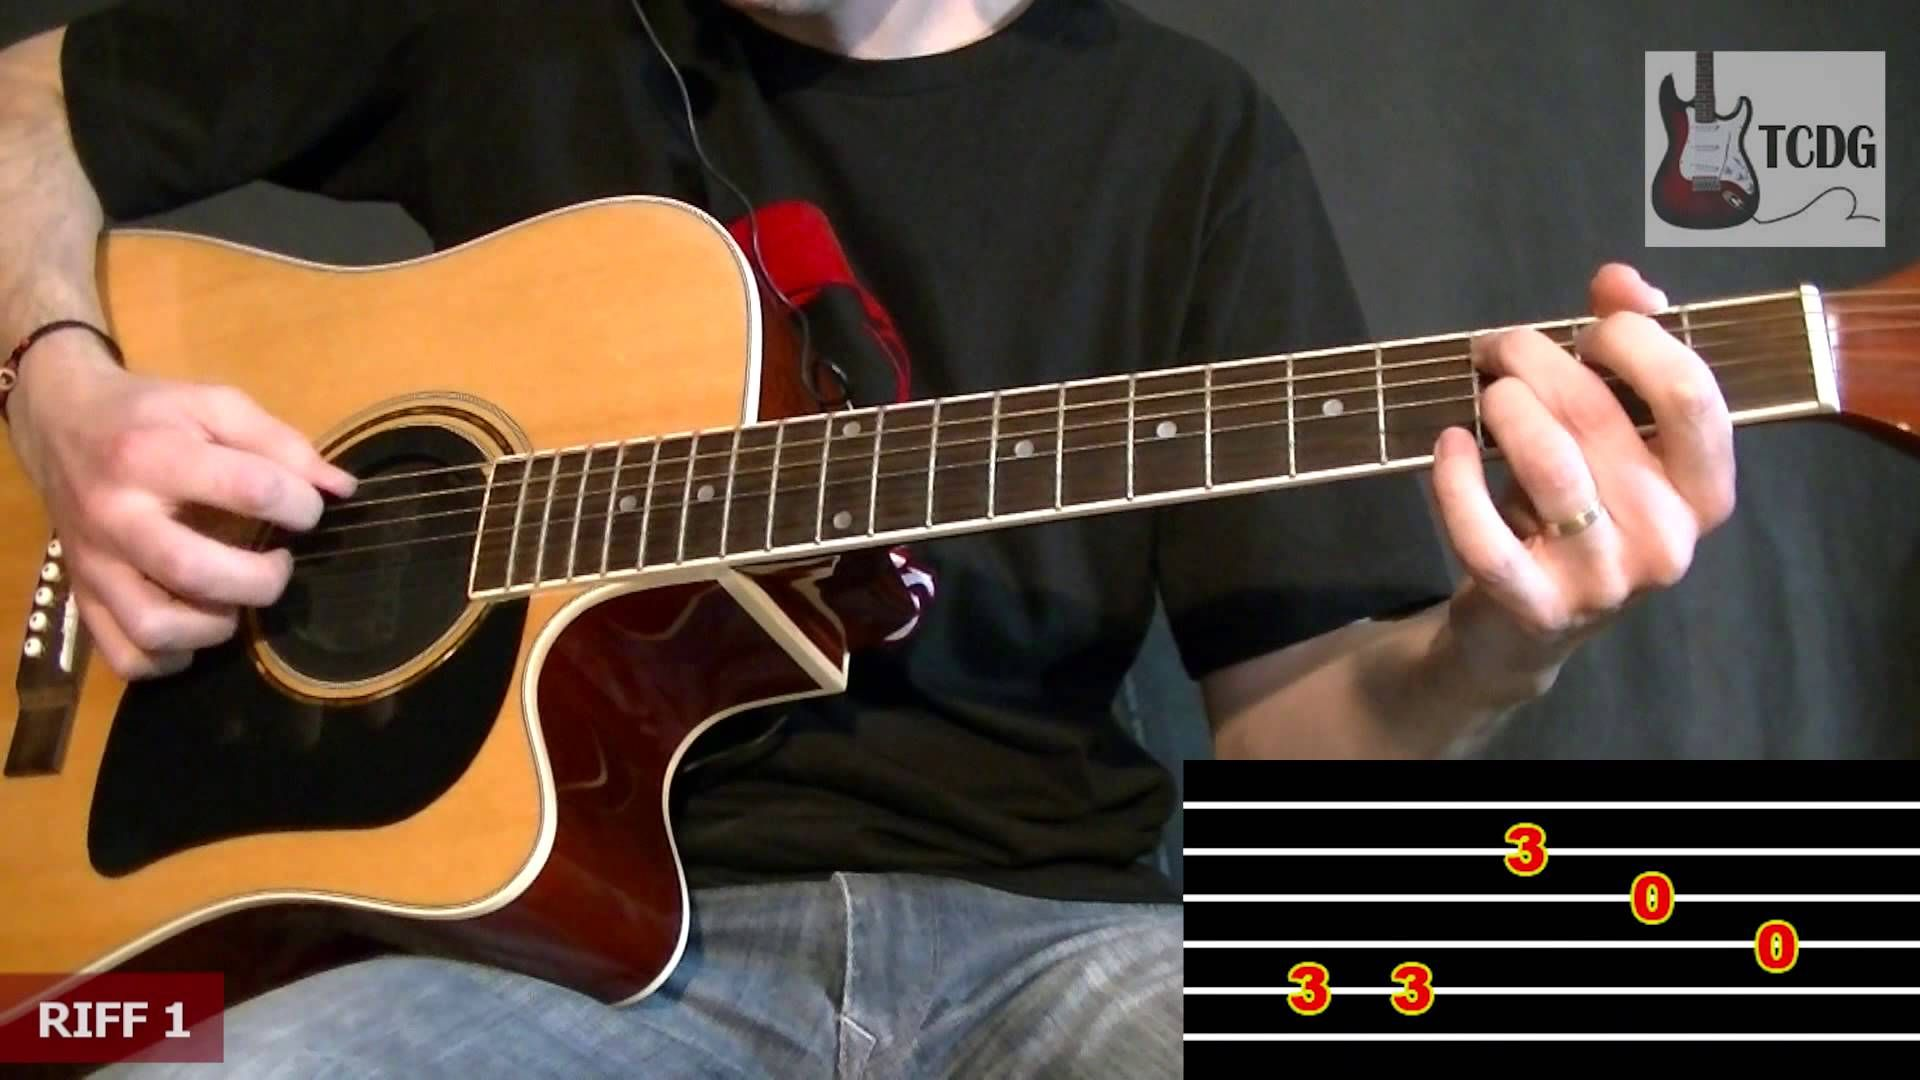 How To Play Sweet Home Alabama Guitar Tabs Chords Notes Free